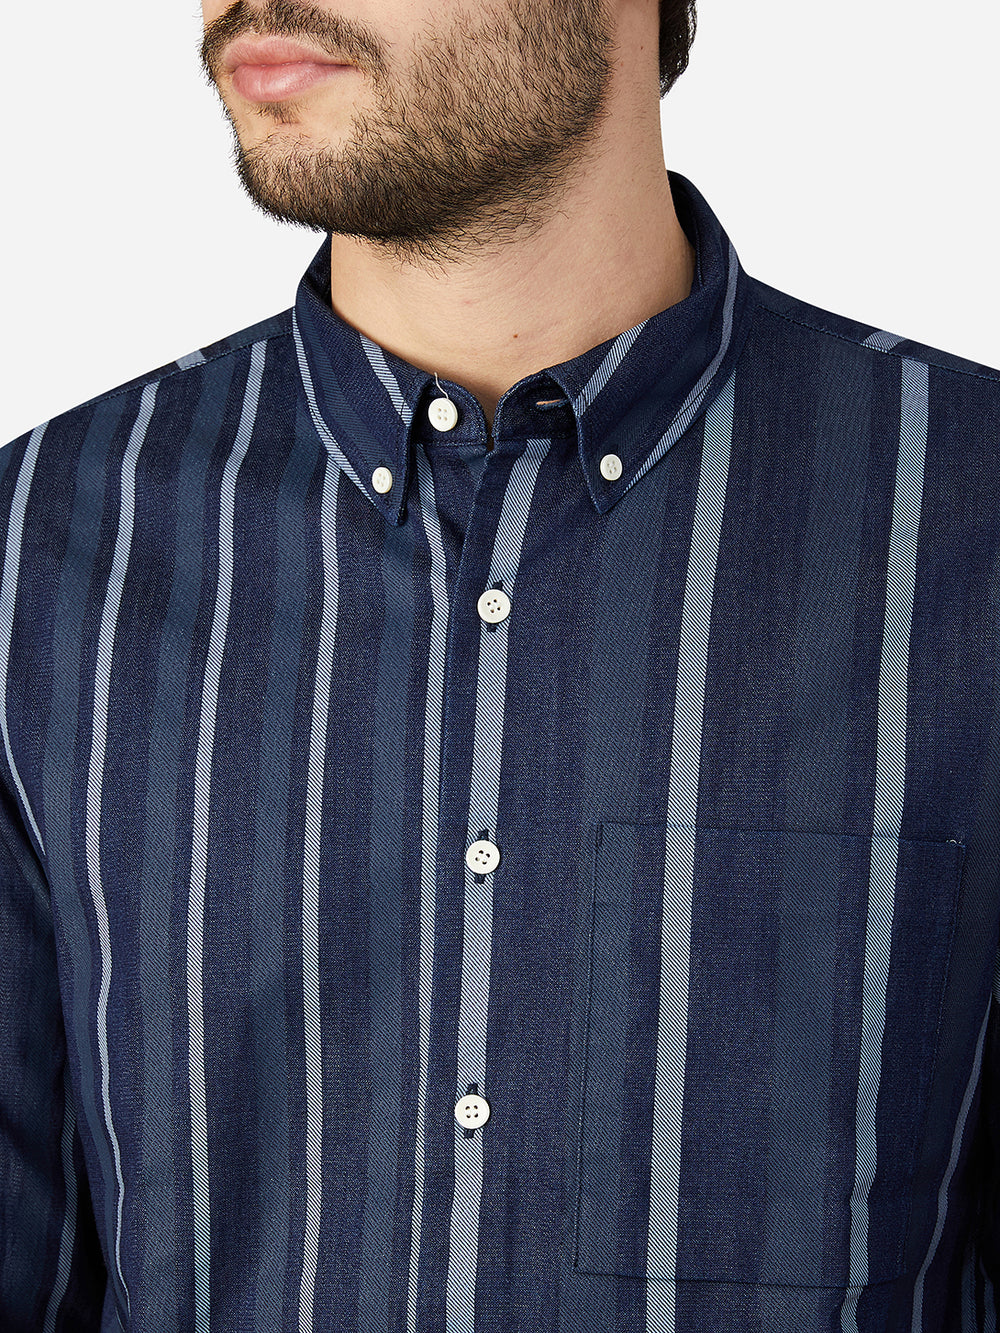 INDIGO QUINCY SHIRT ONS Clothing Indigo Capsule